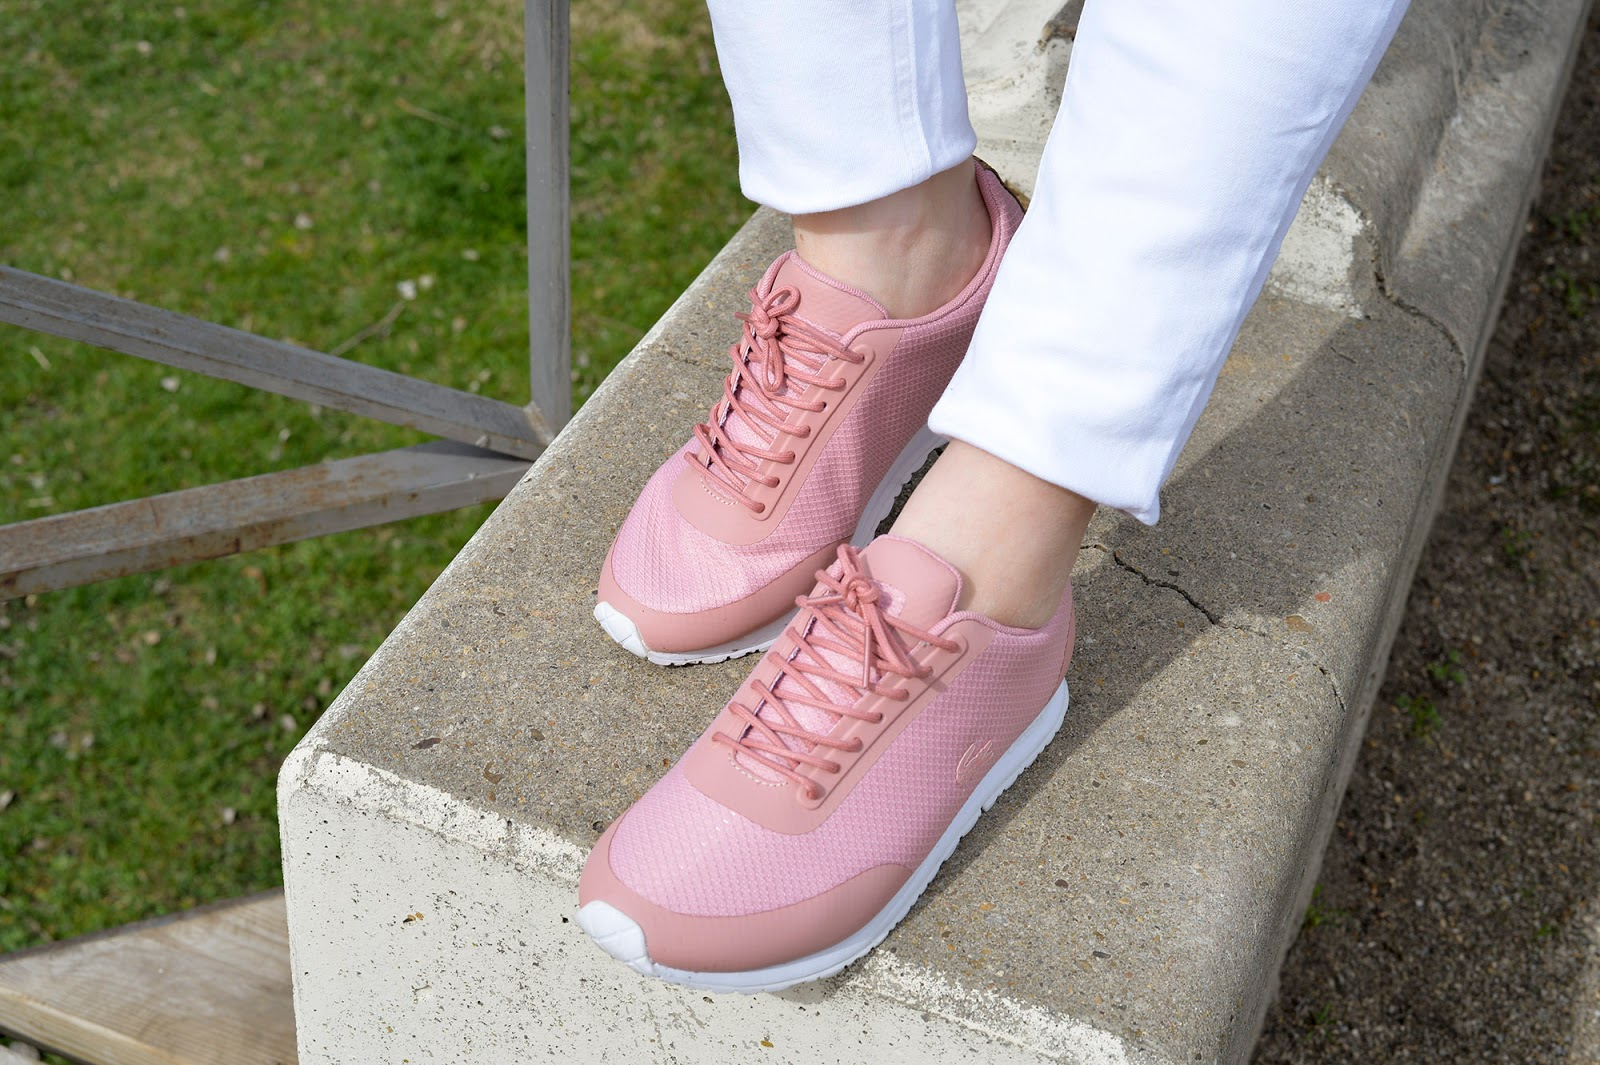 outfit comfortable travel shoes stylish walking cute chic sneakers pink lacoste spring summer women europe